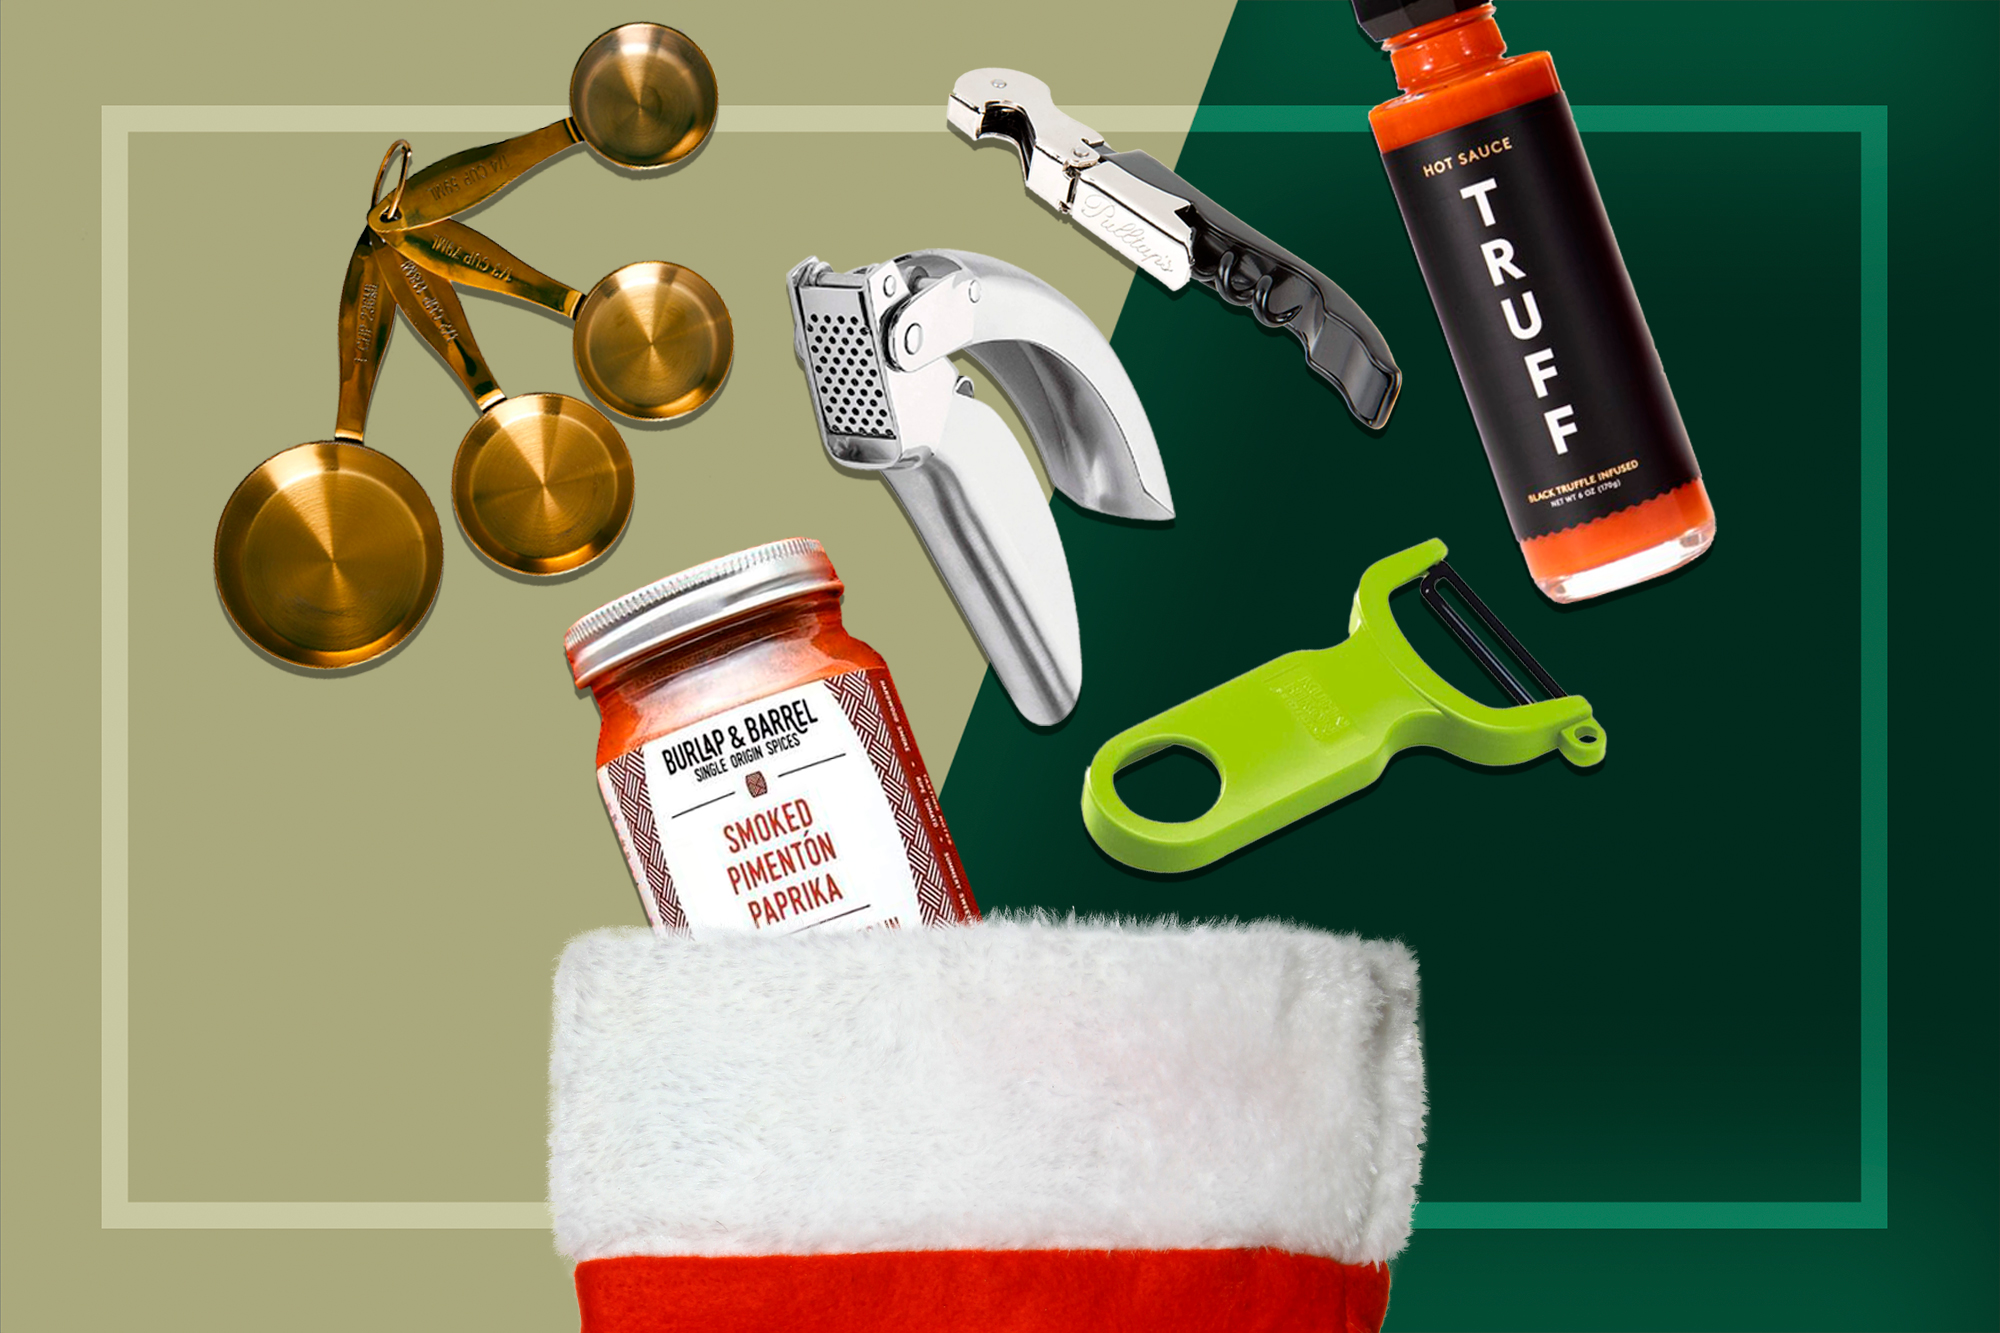 stocking stuff gifts: measuring cups, garlic press, wine opener, truffle hot sauce, vegetable peeler, smoke paprika